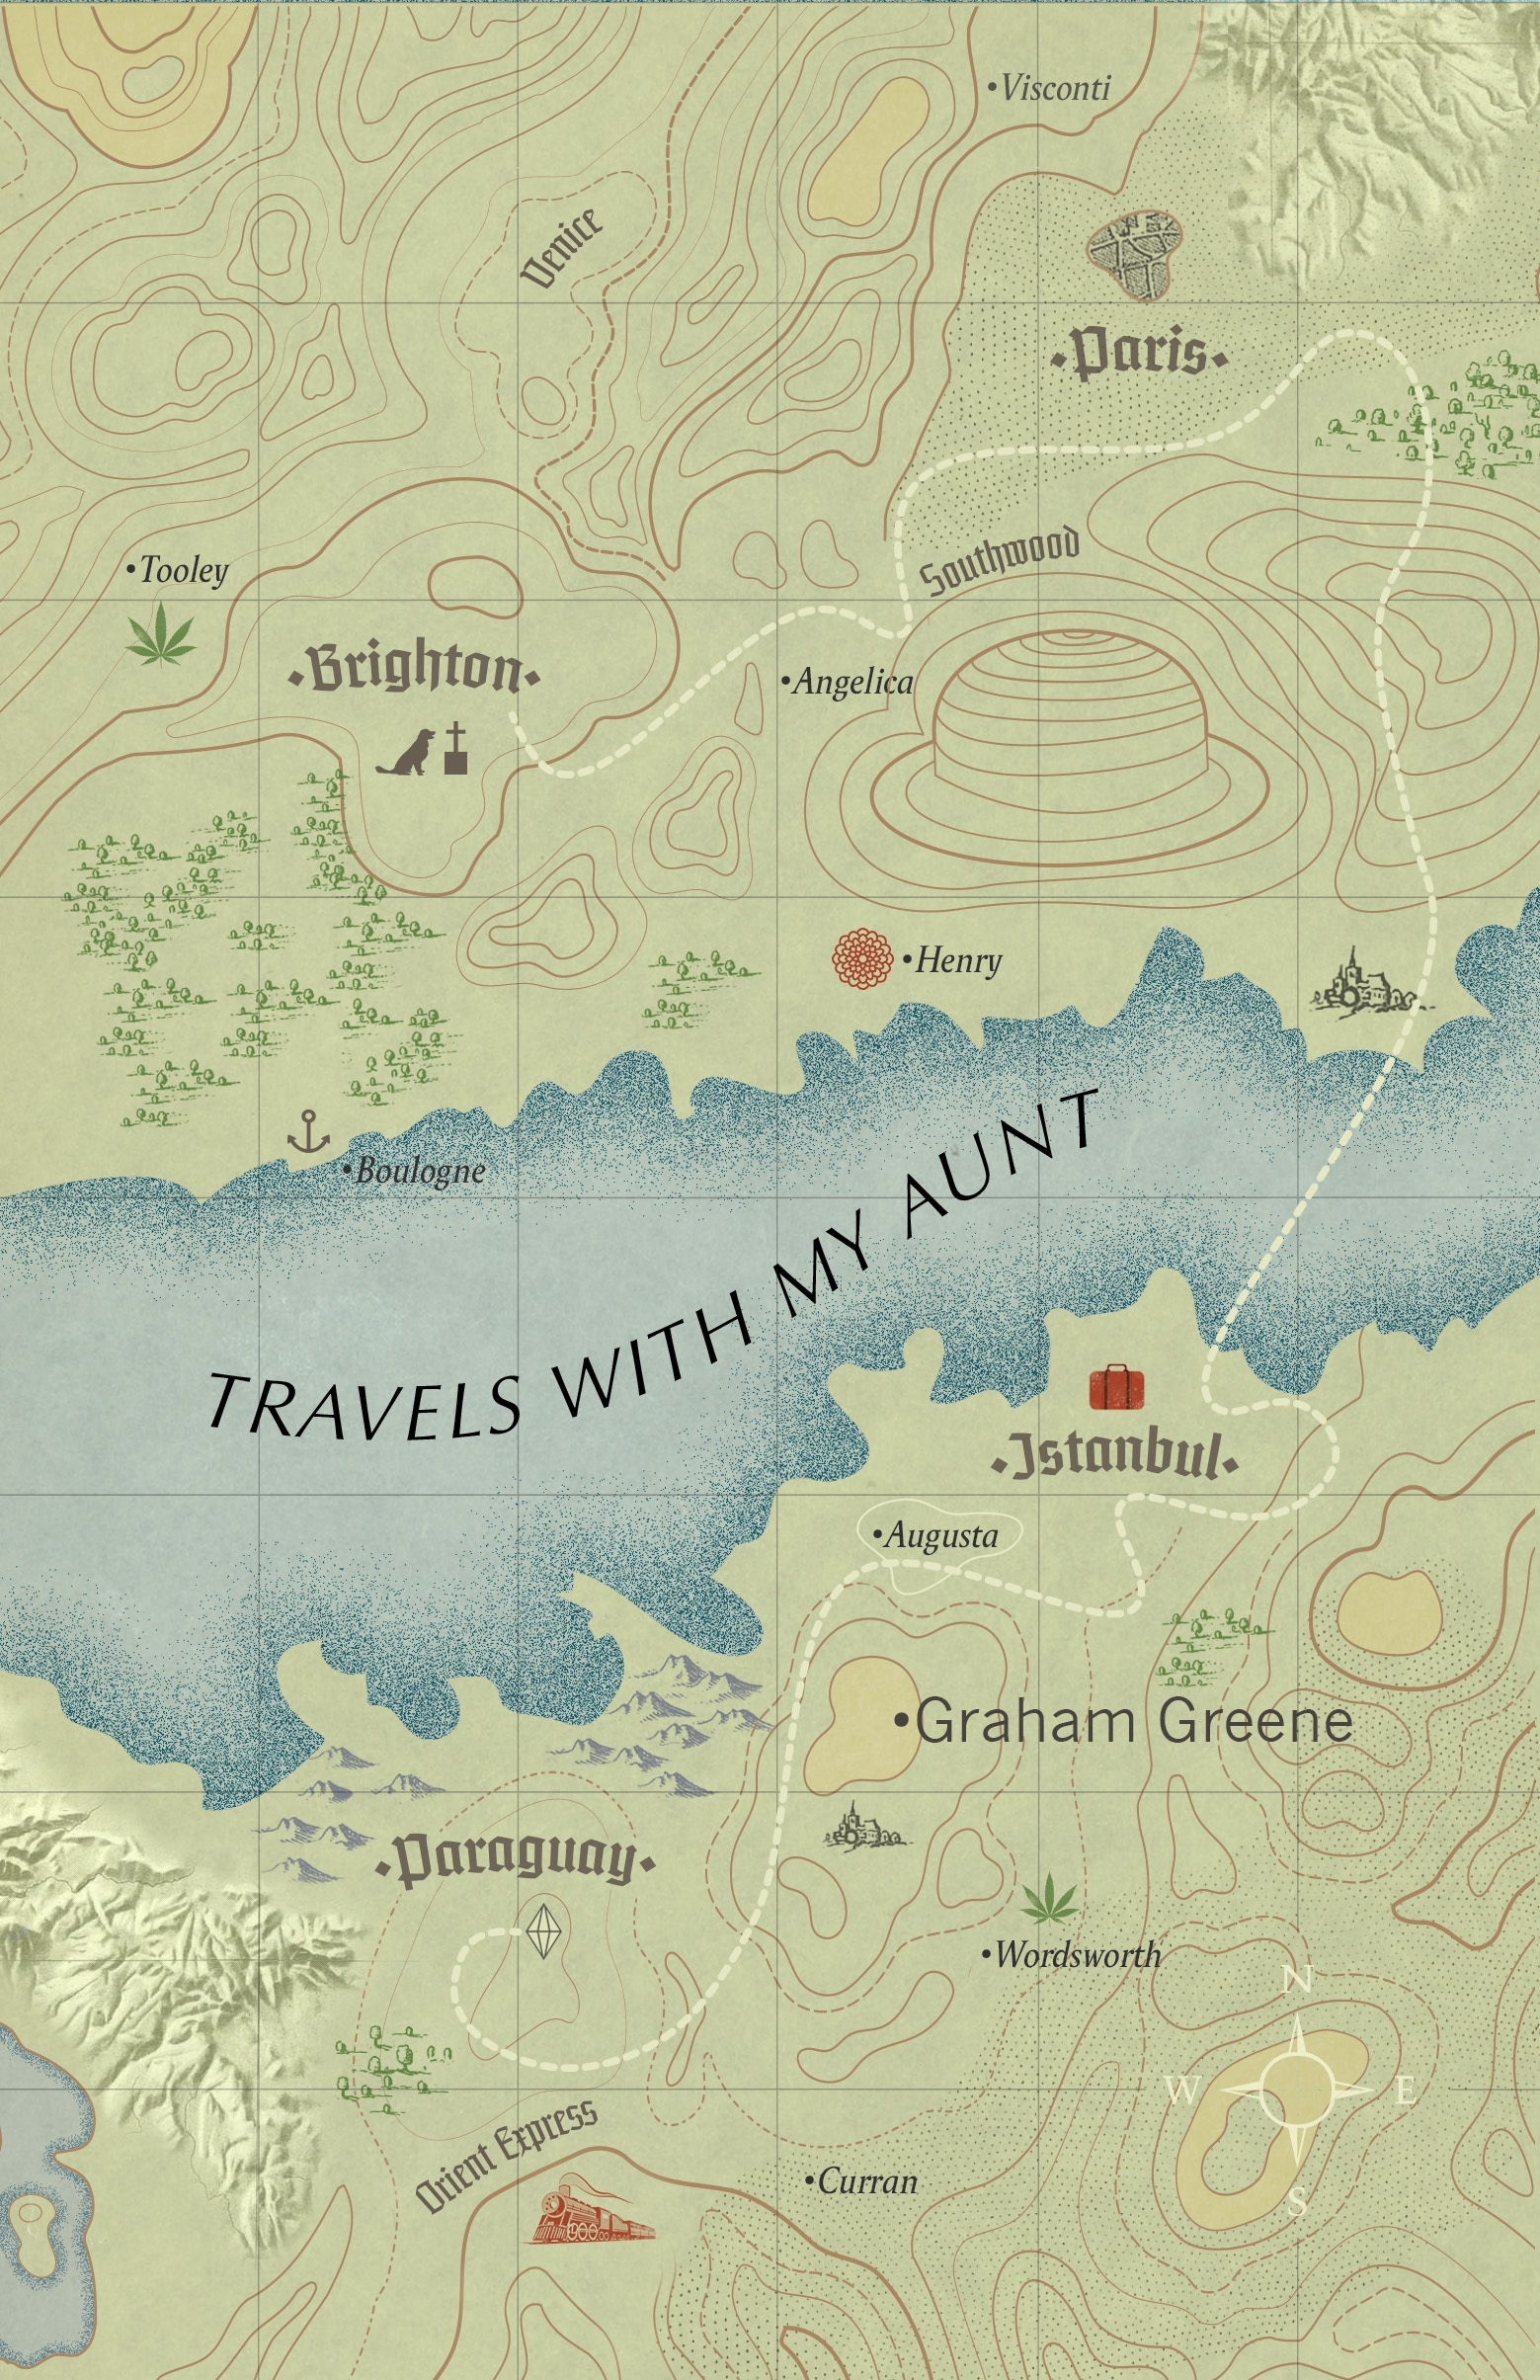 Travels With My Aunt | Graham Greene 9781784875336 Graham Greene Vintage   Reisverhalen Wereld als geheel